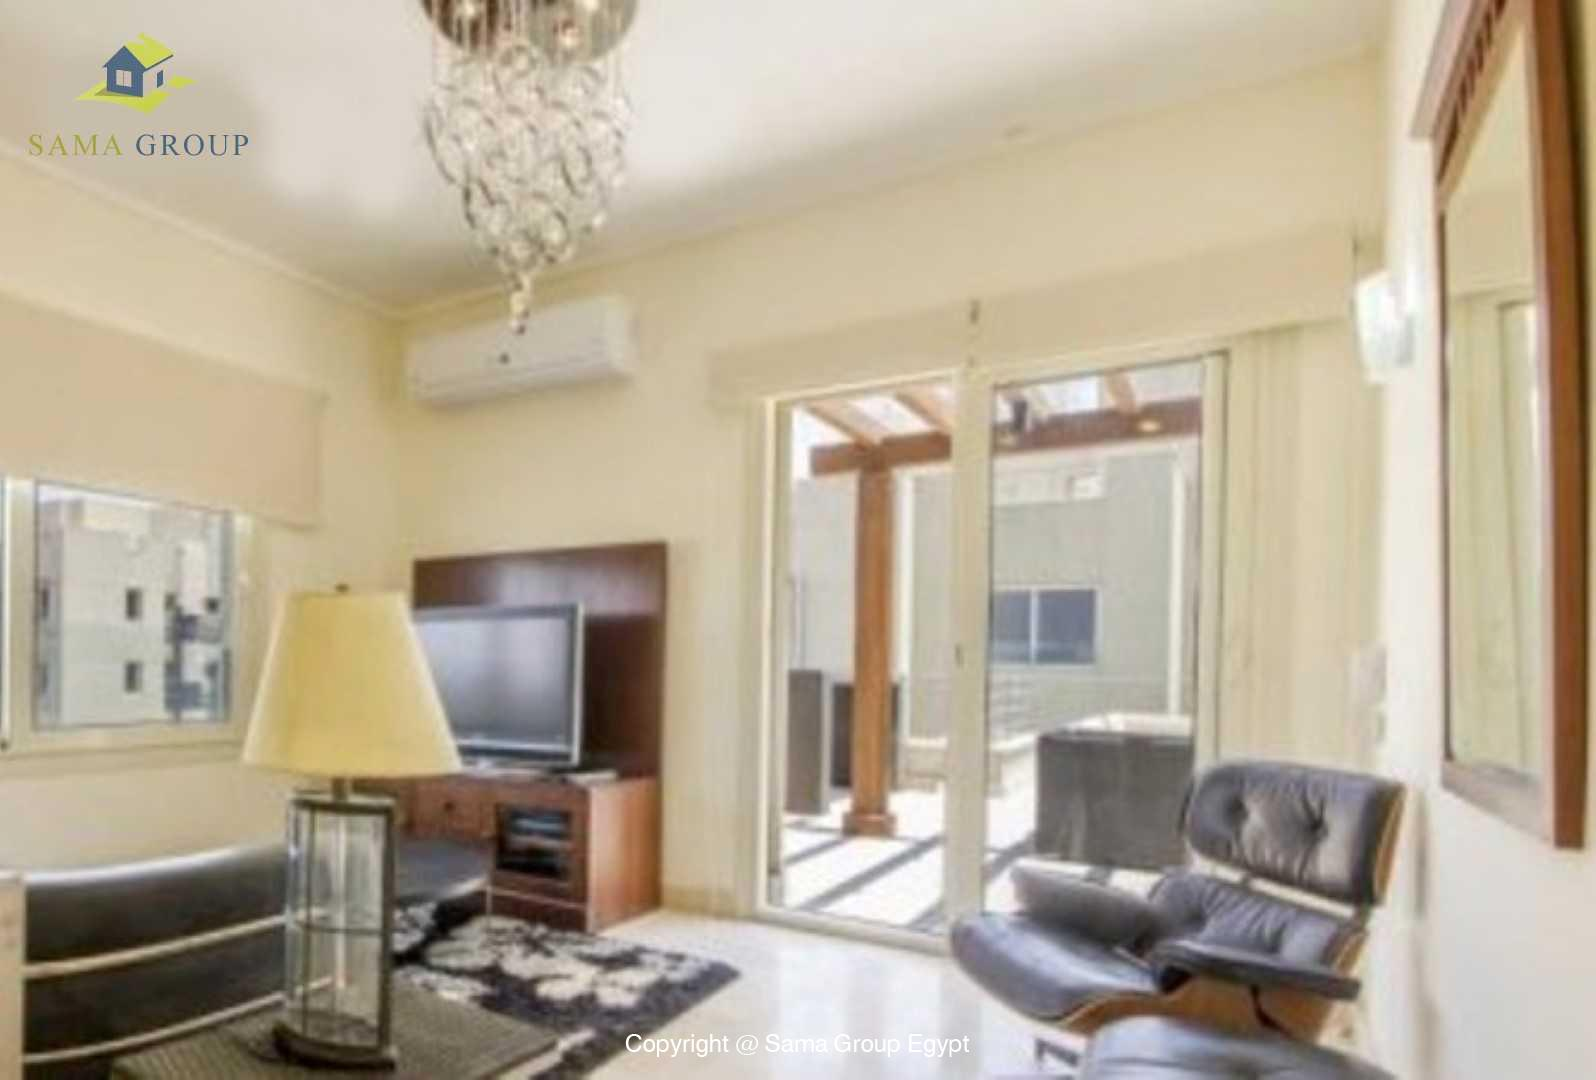 Penthouse For Rent In New Cairo The Village,Modern Furnished,Penthouse NO #8